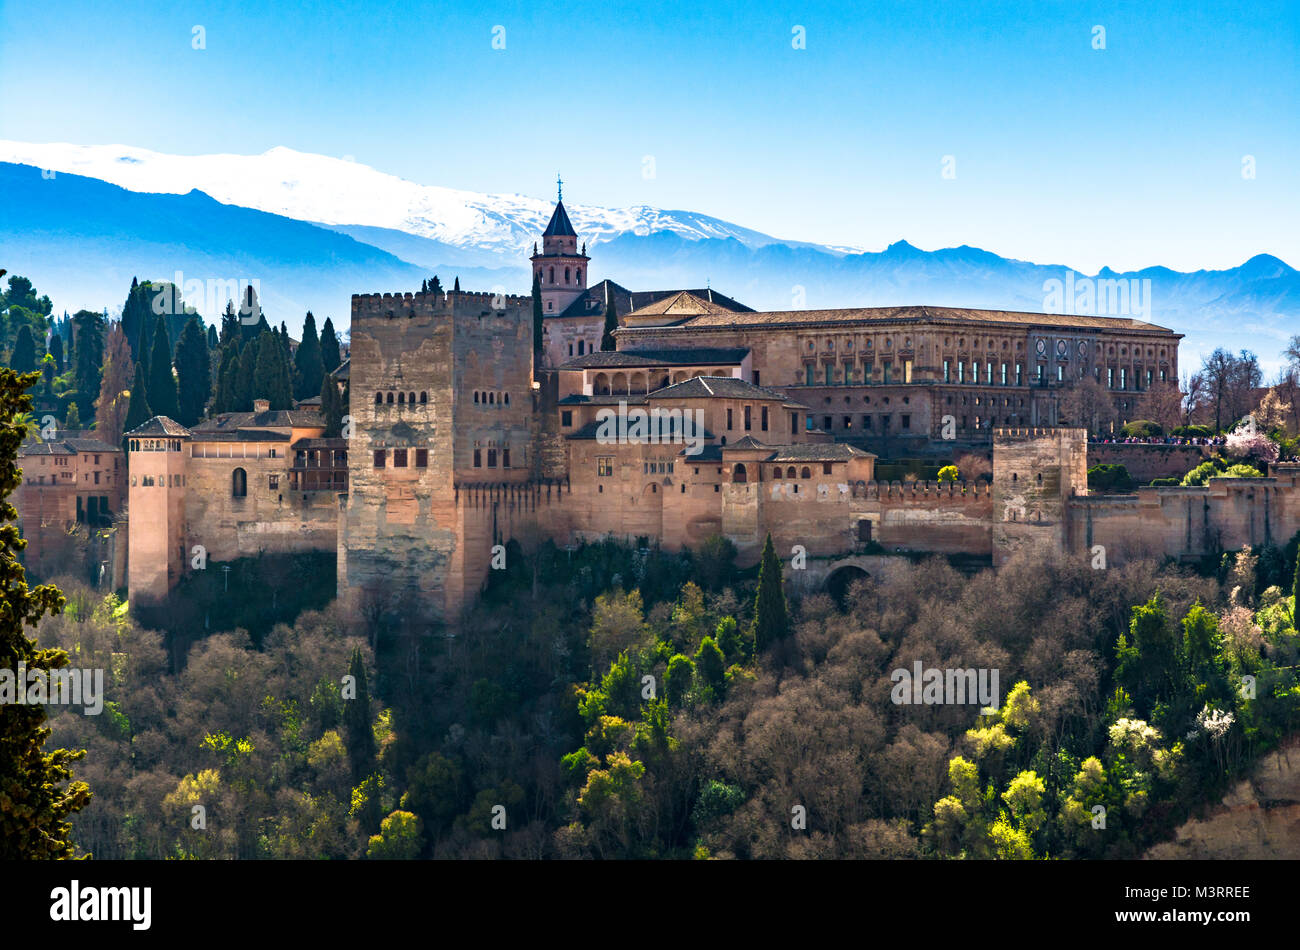 Granada, Spain: The Charles V (Carlos V) royal palace part of the Alhambra palace and fortress complex. - Stock Image